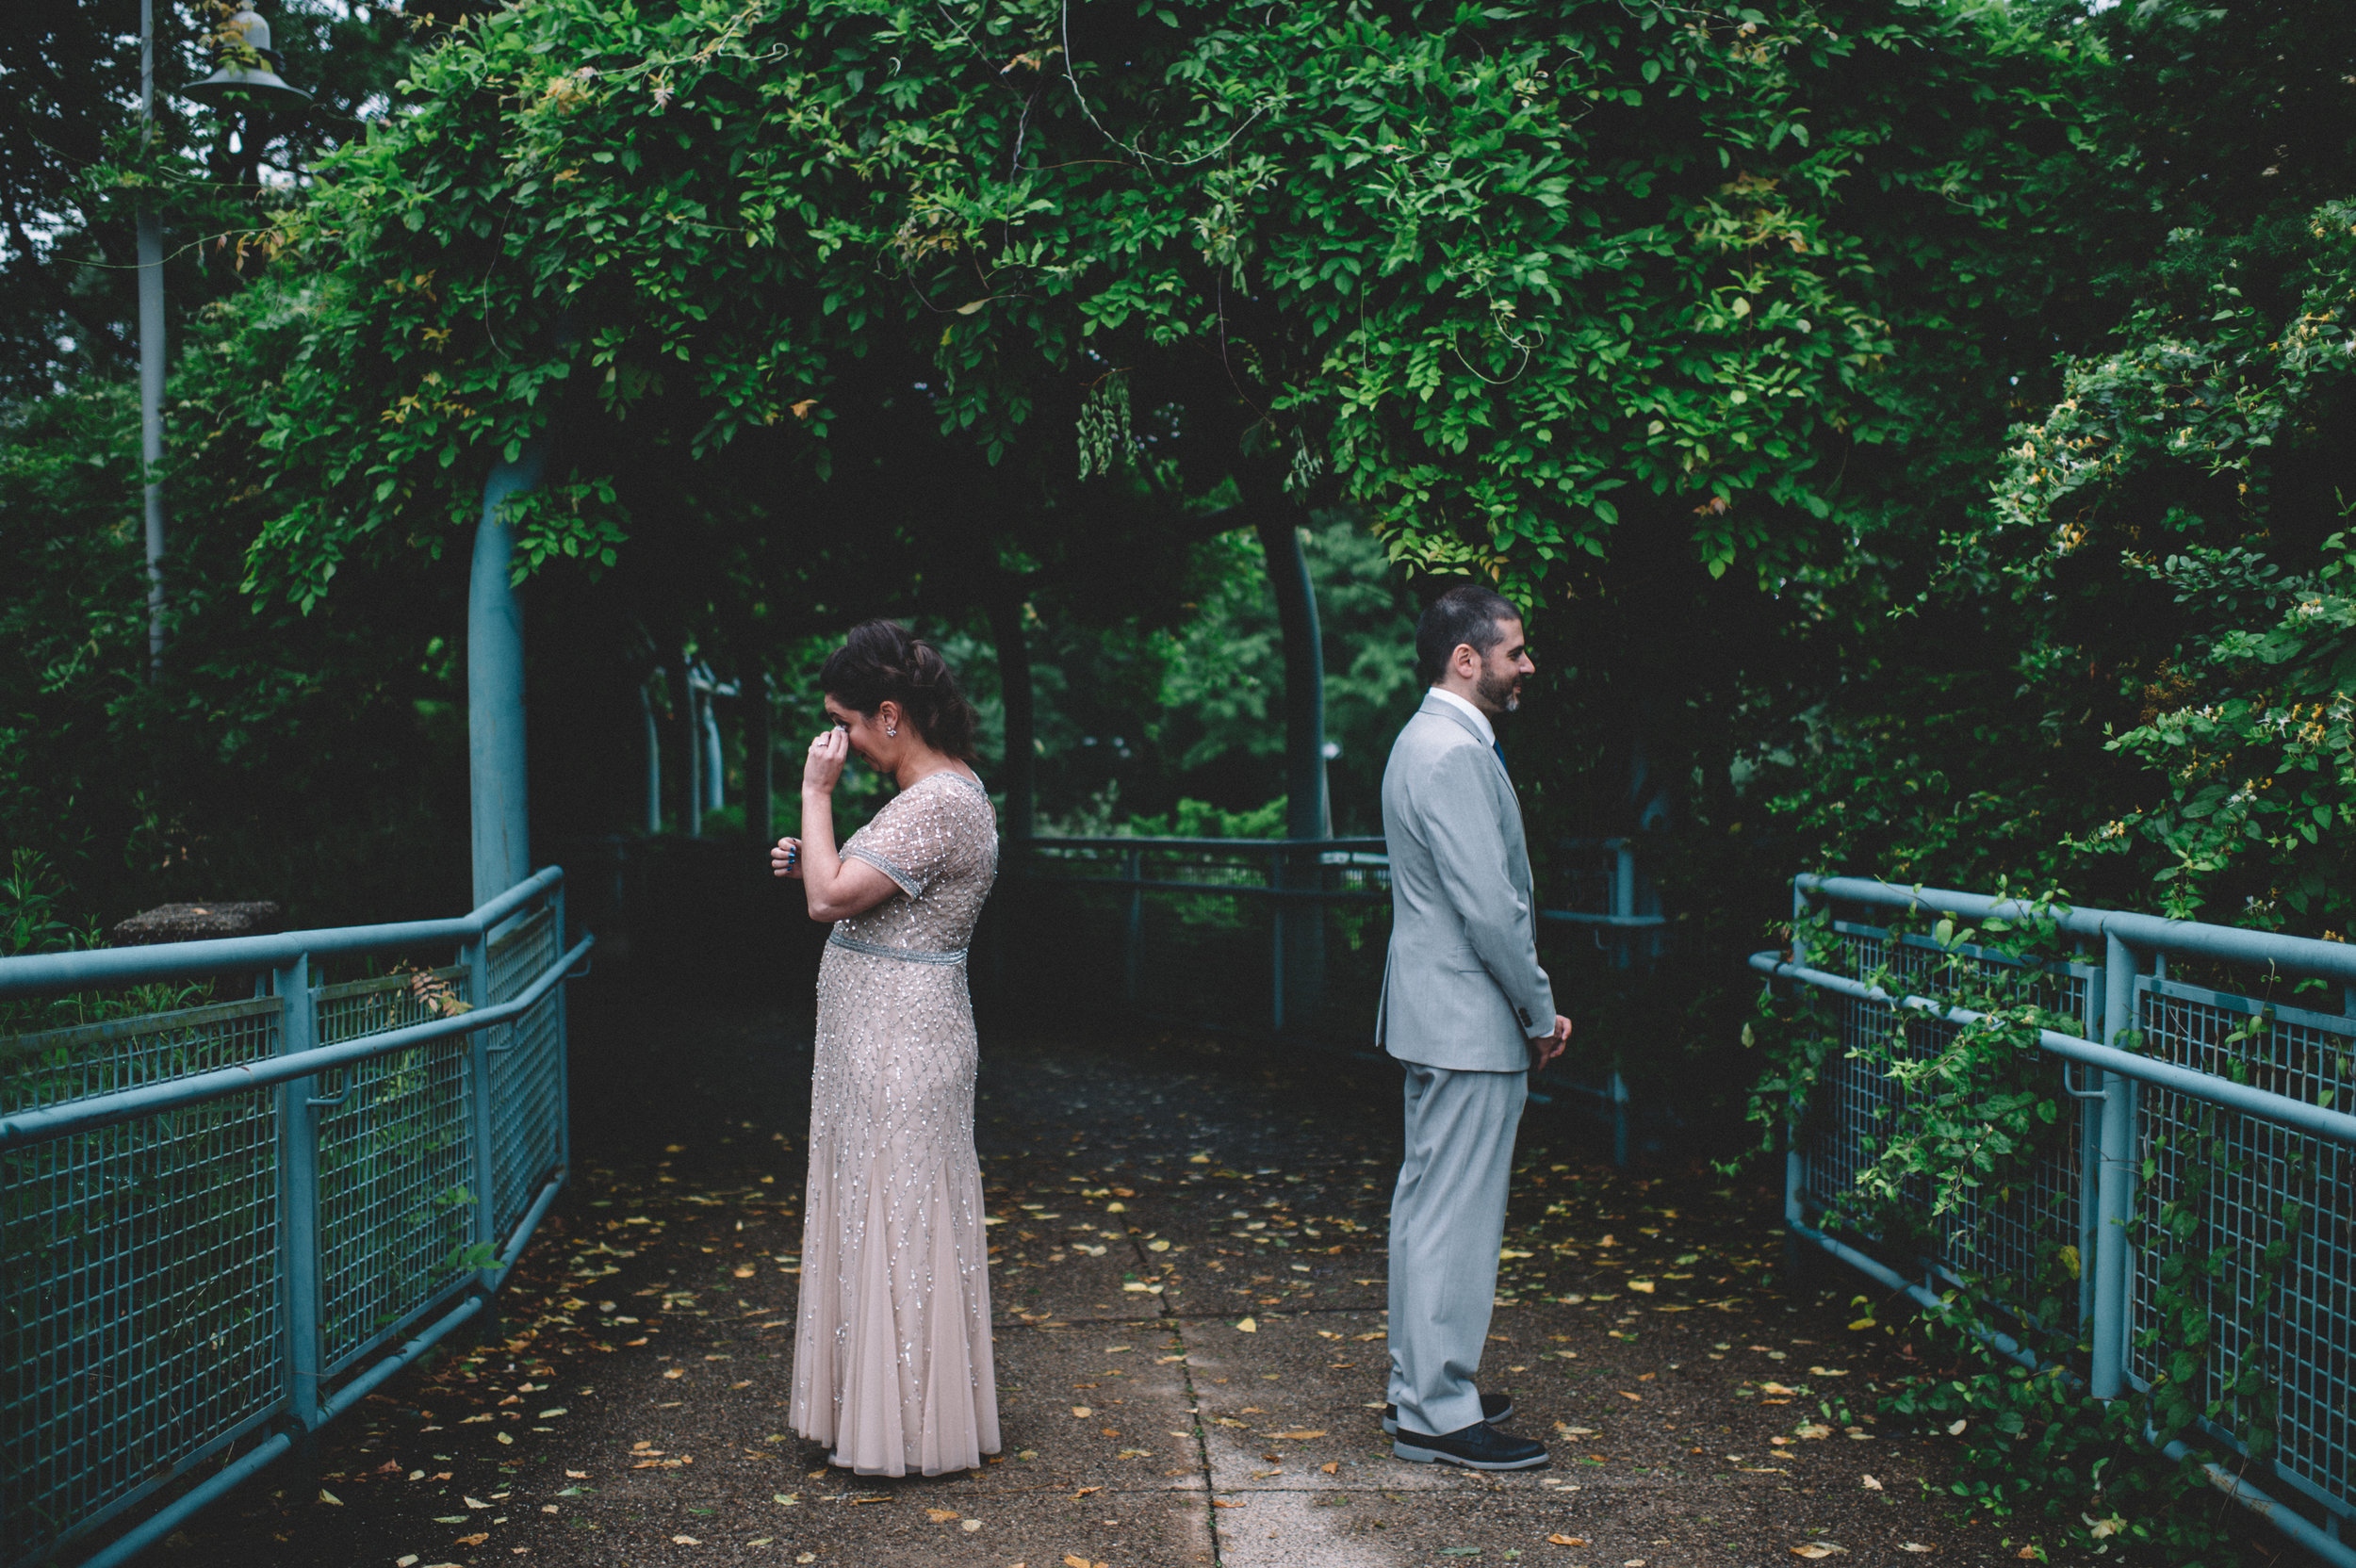 Pittsburgh Elopement Photographer - Bevilacqua-178.jpg